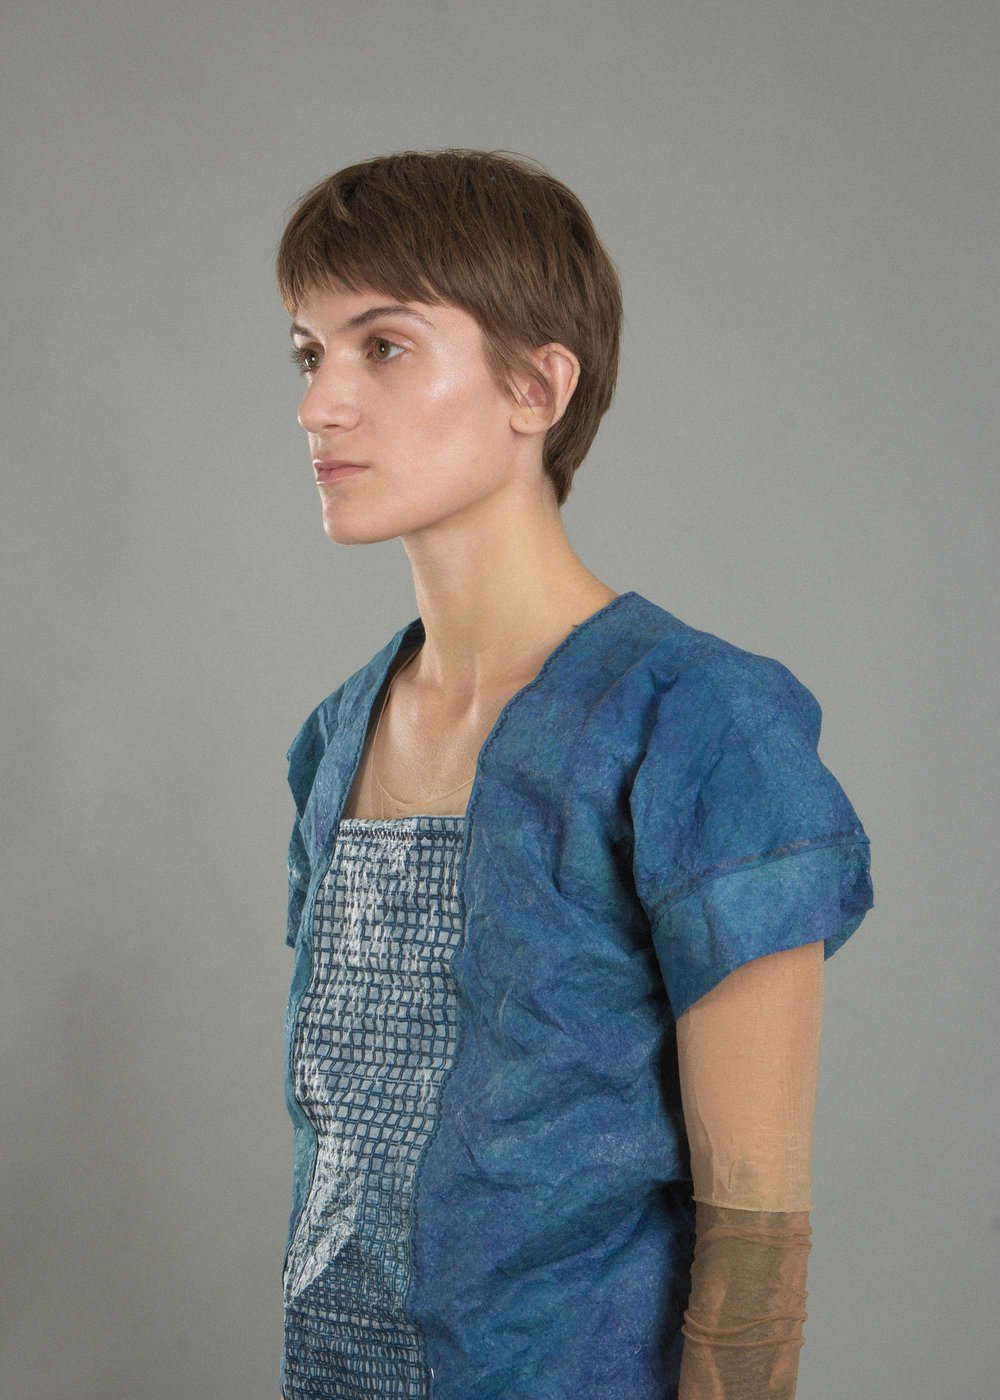 A women wearing a blue shirt with a laser cut pattern down the middle